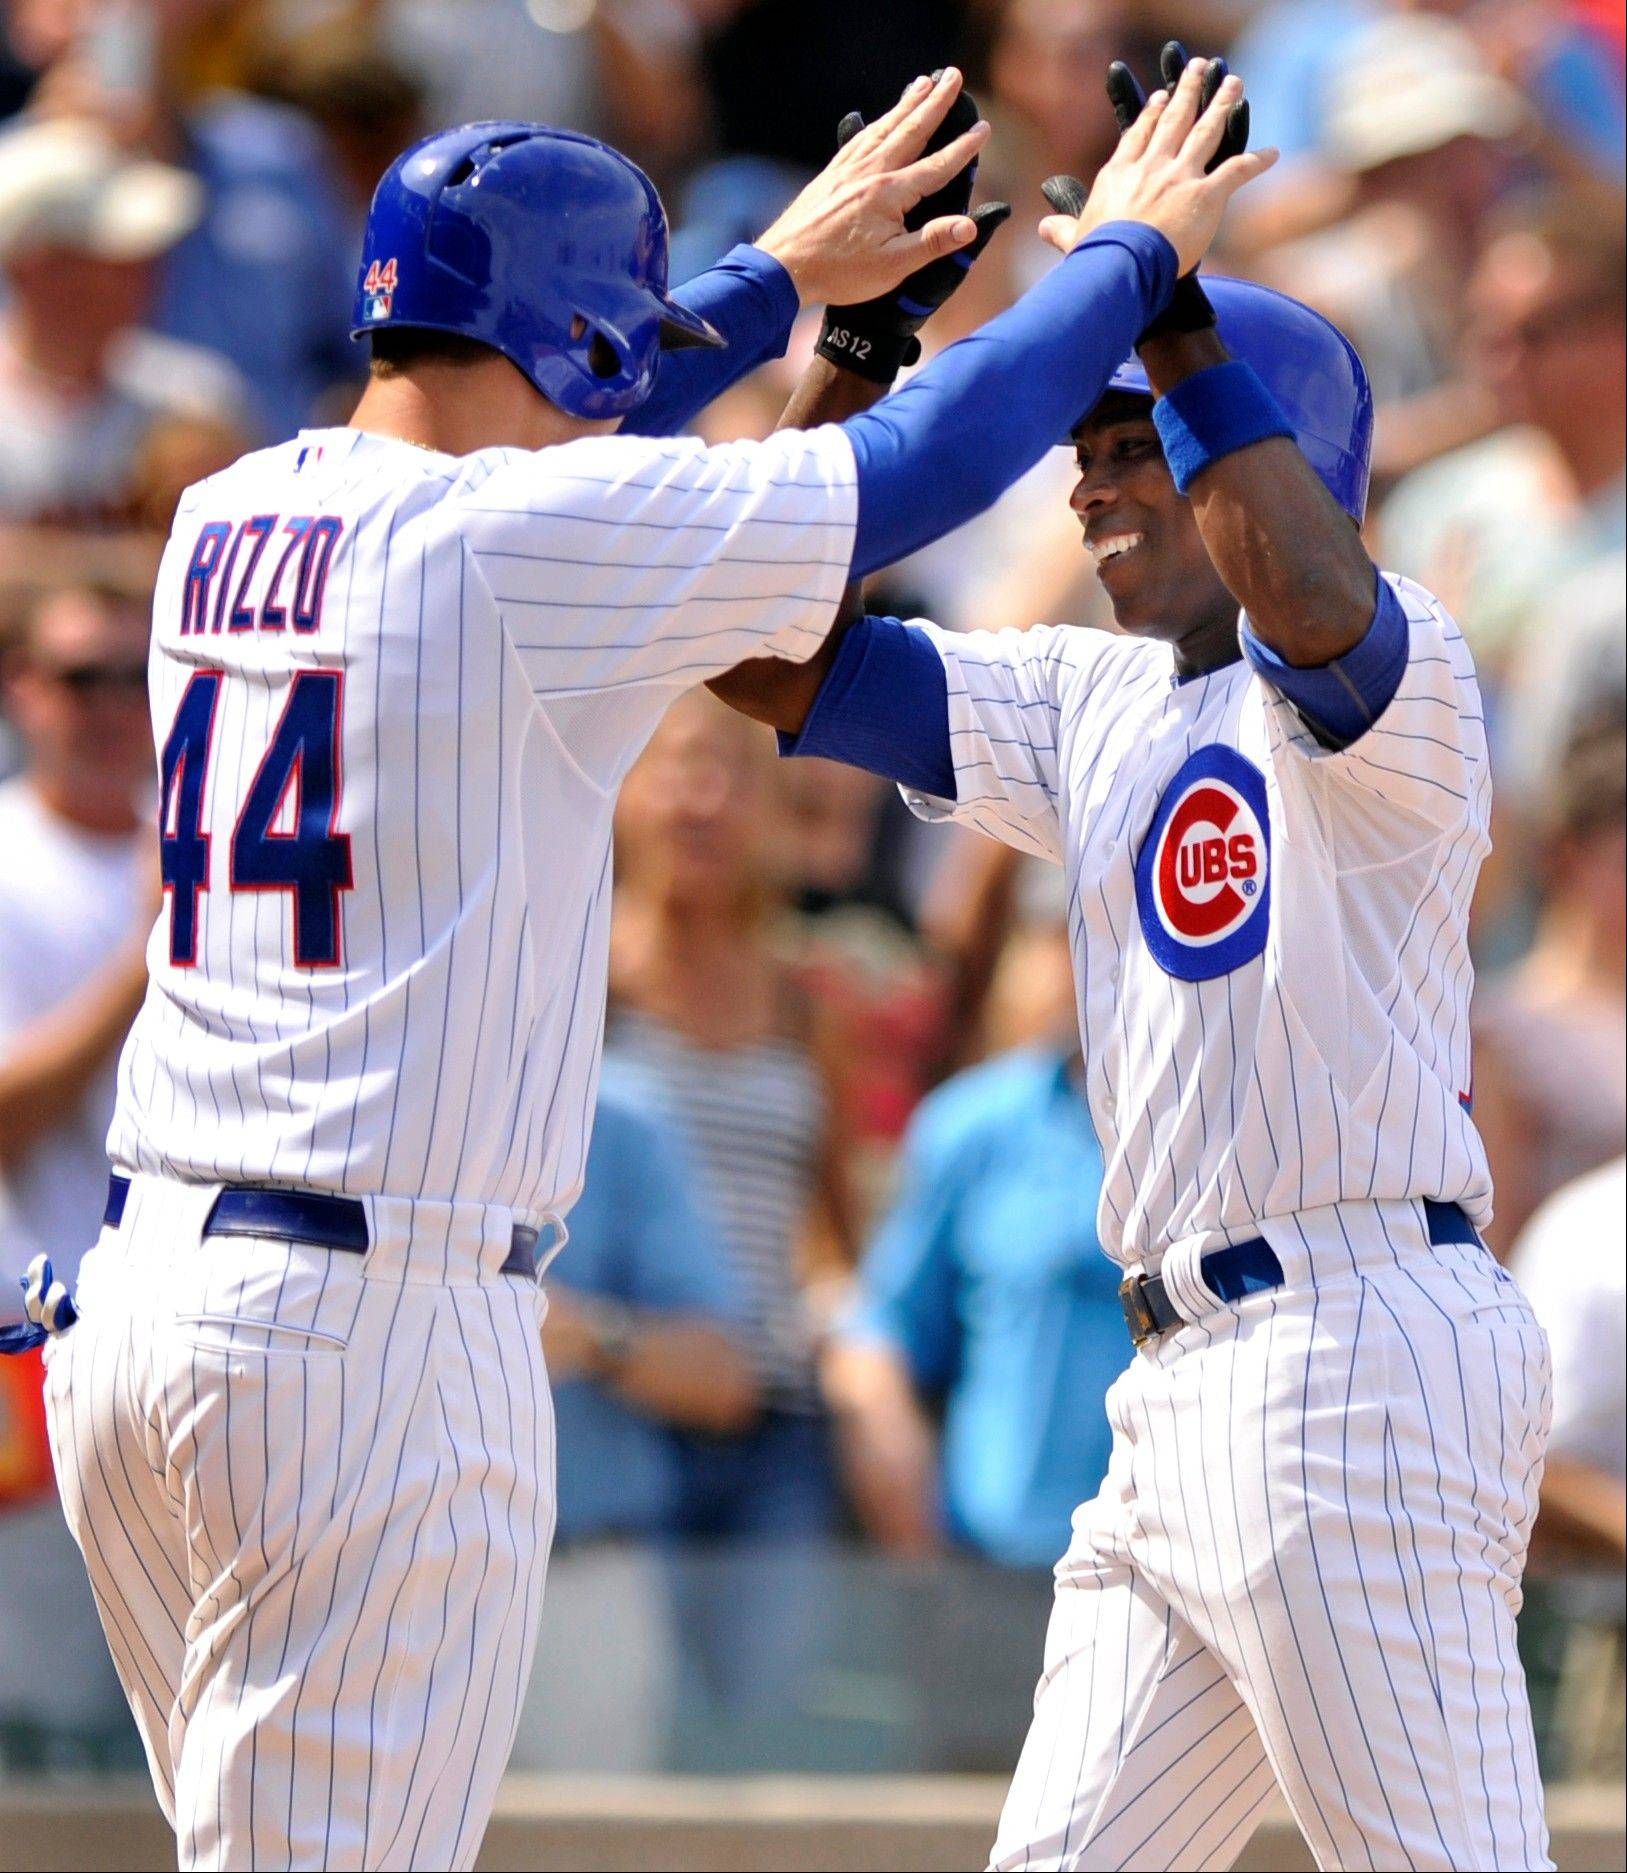 The Cubs' Alfonso Soriano celebrates with Anthony Rizzo after hitting a 2-run homer in the third inning Friday at Wrigley Field. Rizzo later added a solo shot of his own.